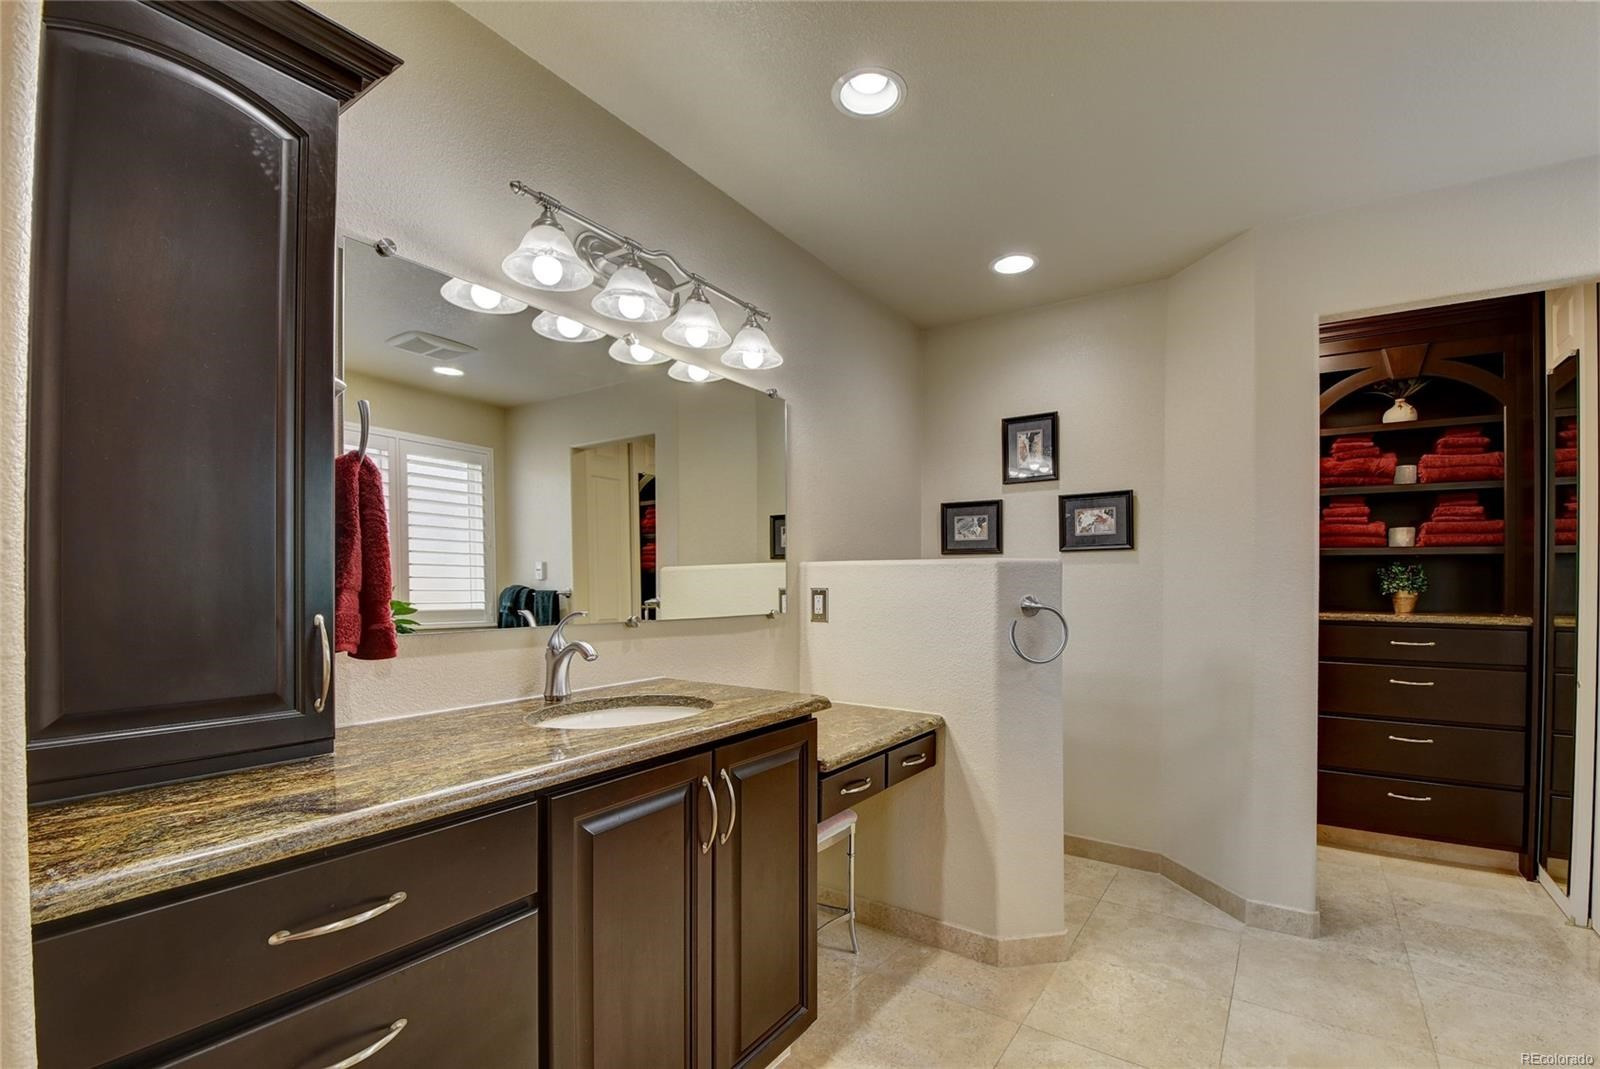 MLS# 9913436 - 17 - 5726 W 81st Place, Arvada, CO 80003